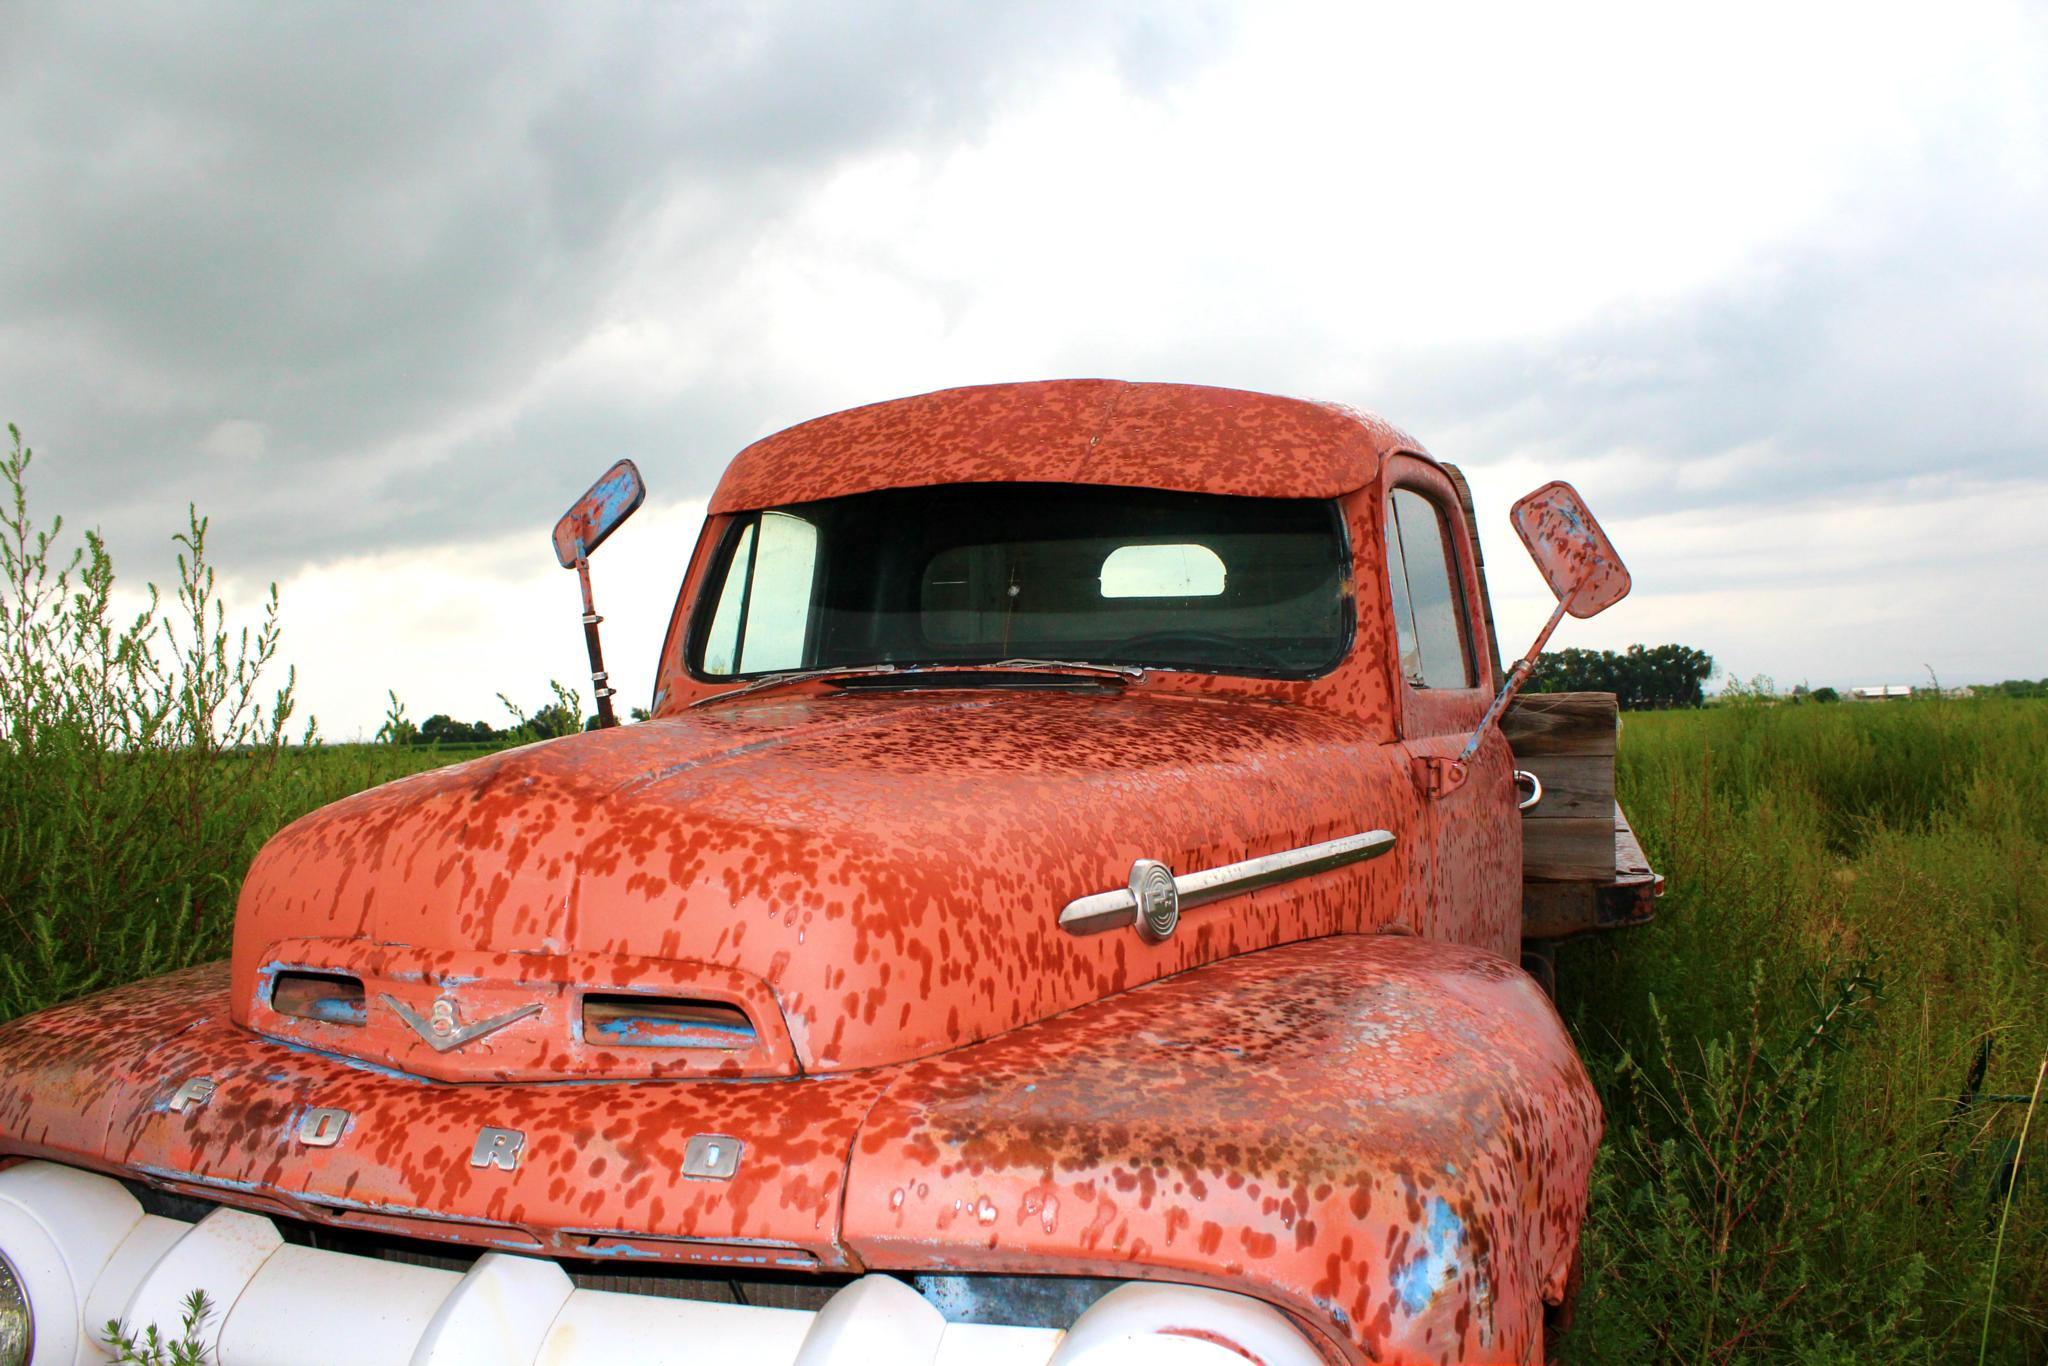 This Old Truck by Lucretia Bittner